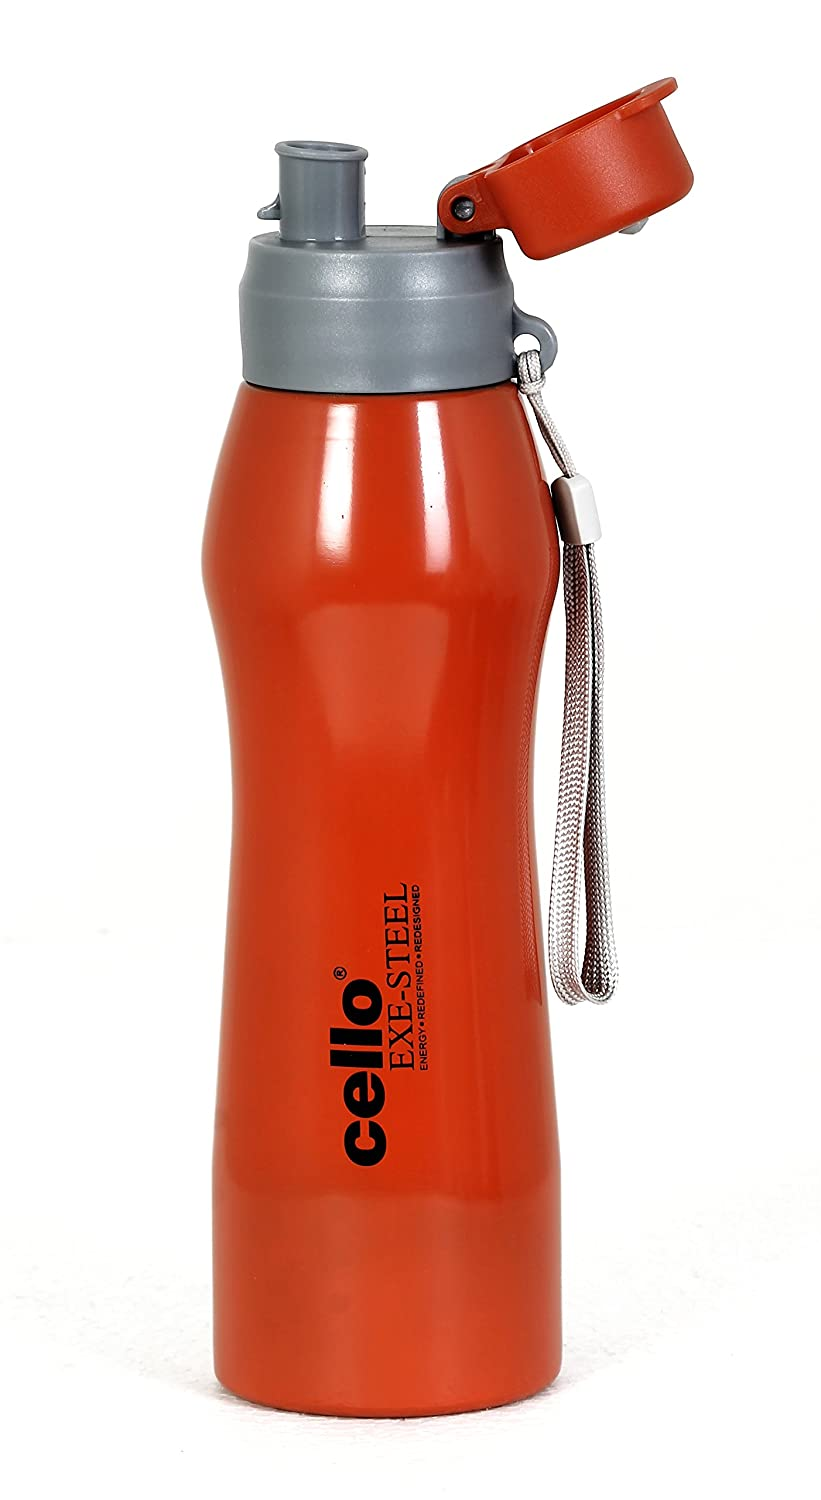 b085bd9e1a Buy Cello ExeSteel Grippy Stainless Steel Sports Bottle 1000ml, Orange  Online at Low Prices in India - Amazon.in